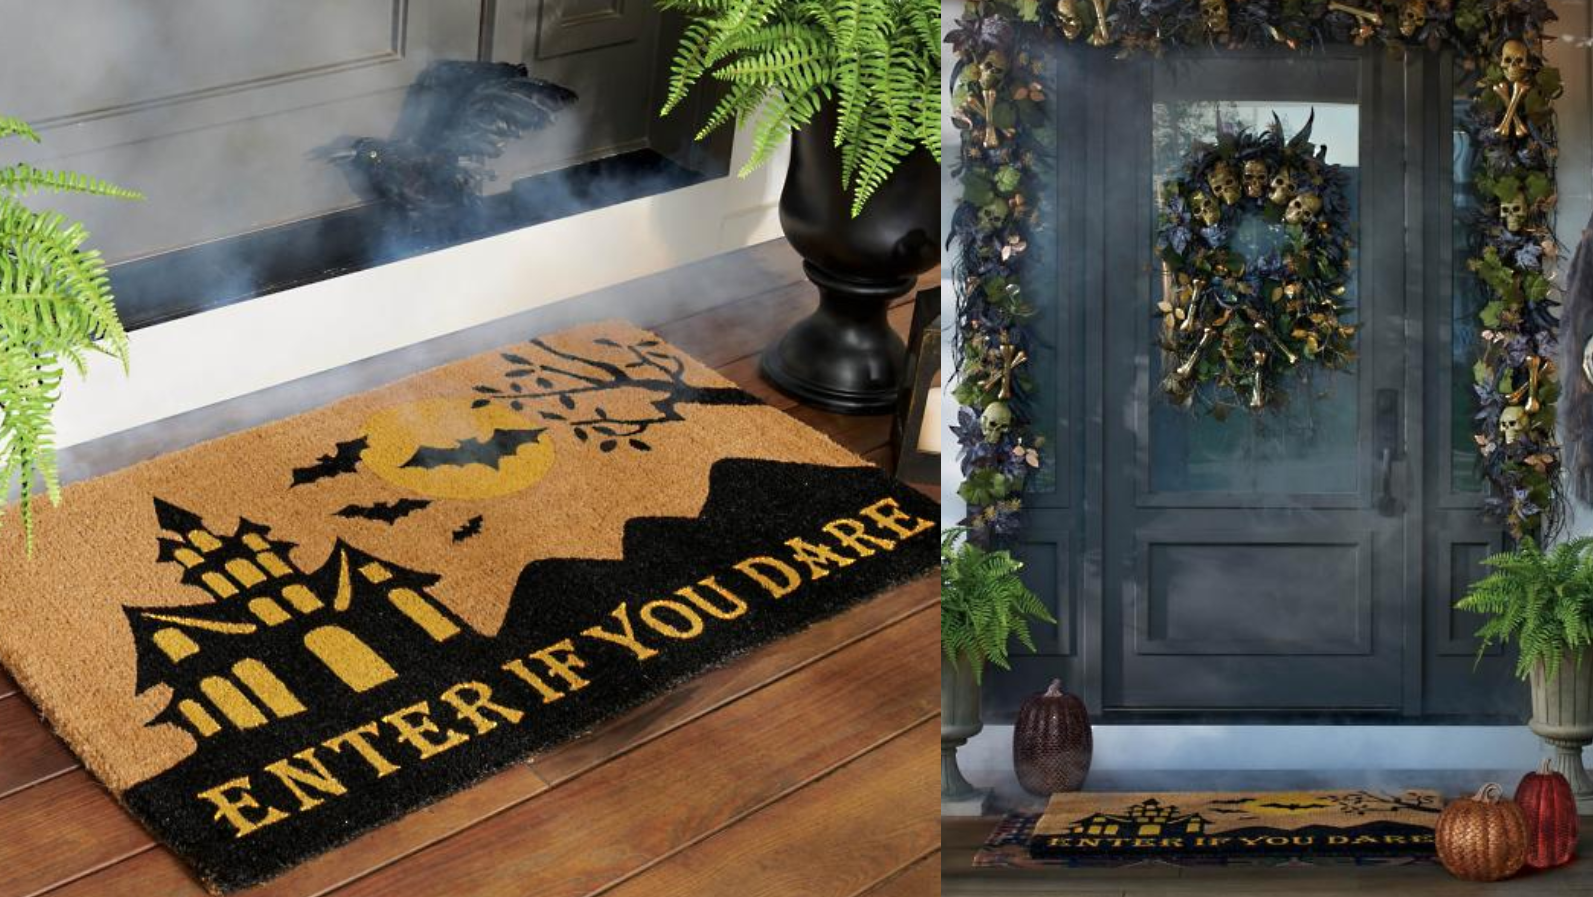 Swap out your regular welcome mat for this Halloween-themed one.